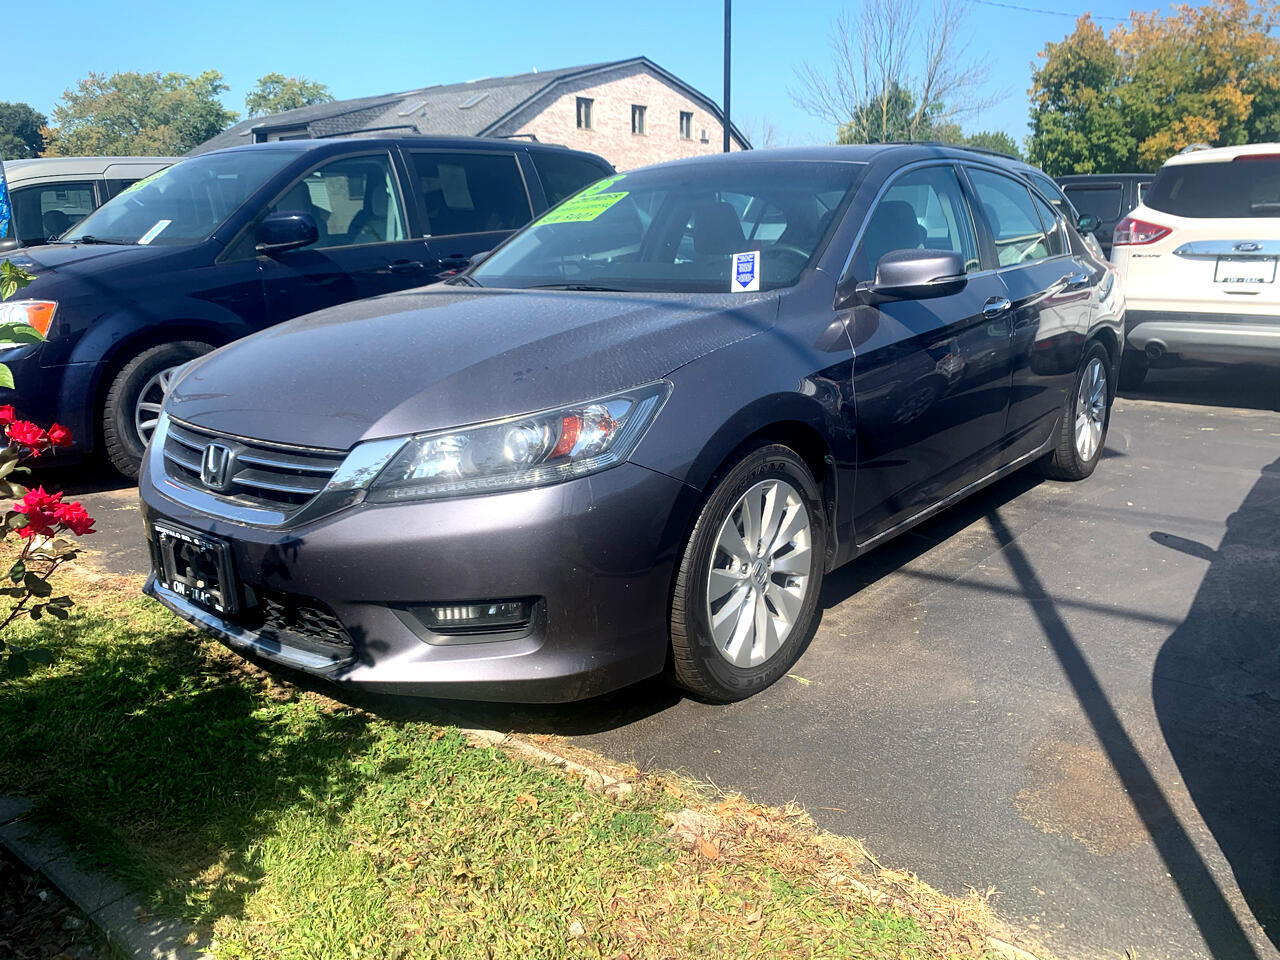 Honda Accord Sedan 4dr I4 CVT EX 2015